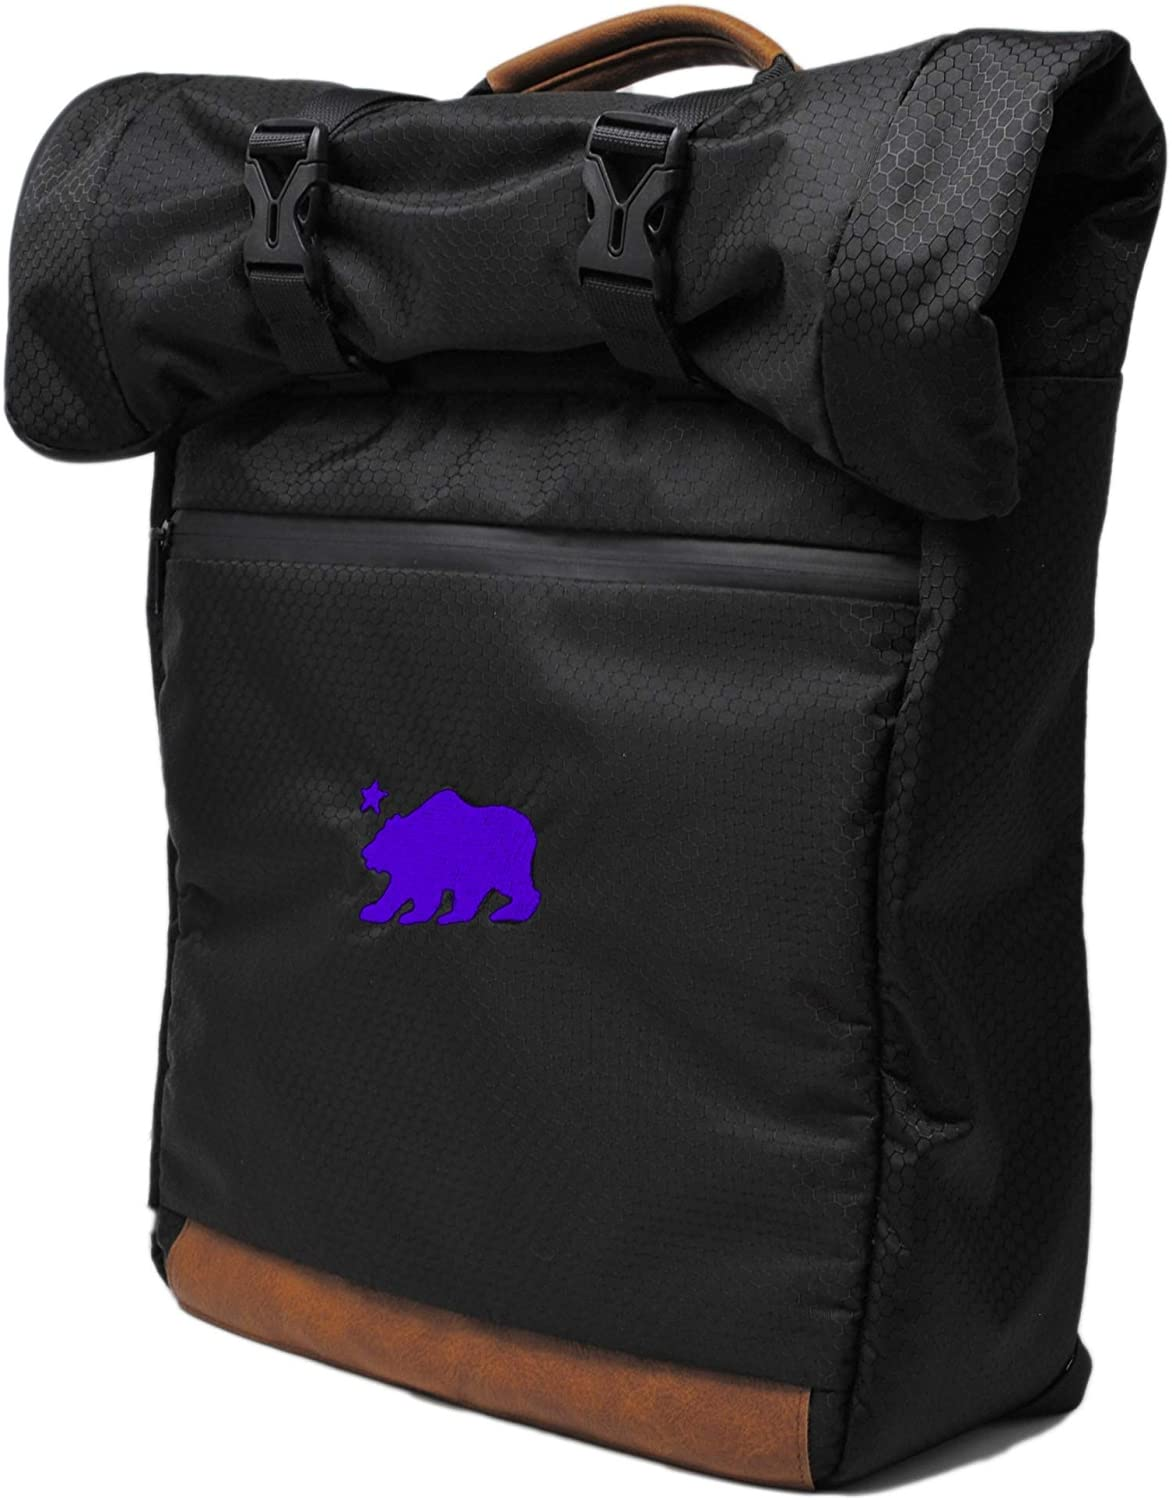 Cali Crusher 100 Smell Proof Roll Top Backpack - Water Proof - Hydroponics Black Purple